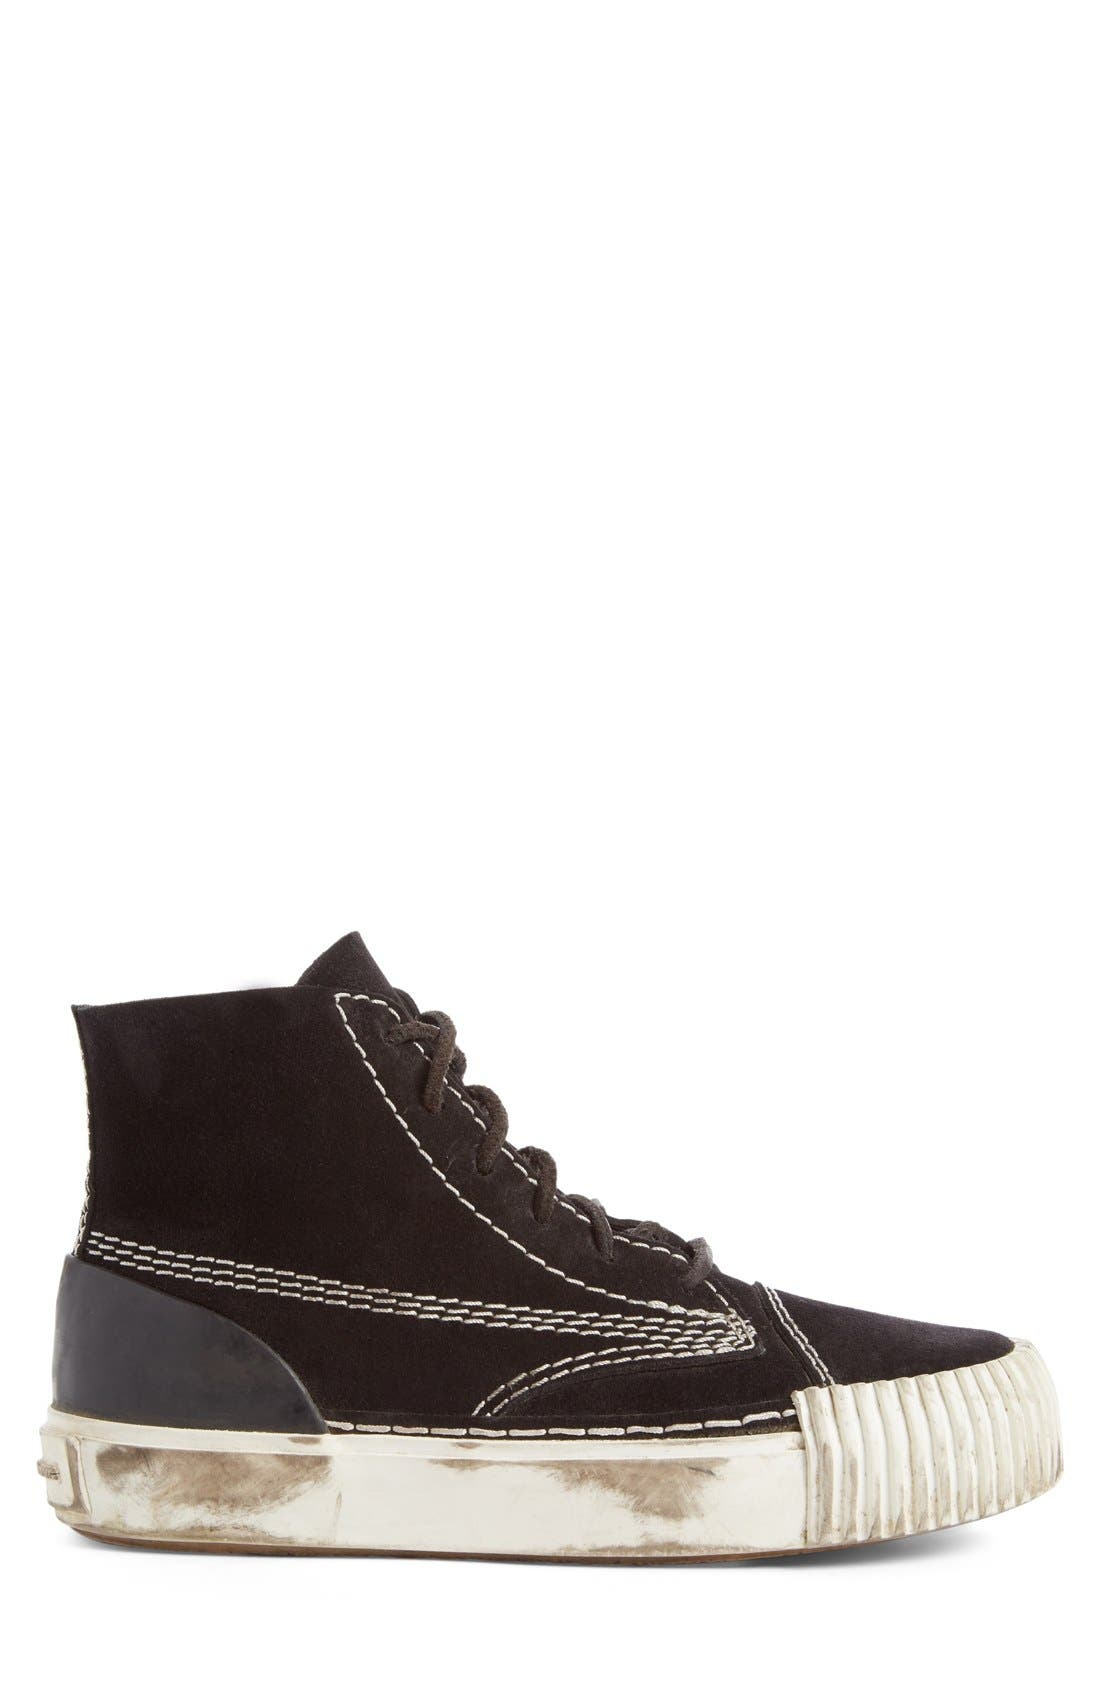 'Perry' Suede High Top Sneaker,                             Alternate thumbnail 9, color,                             001